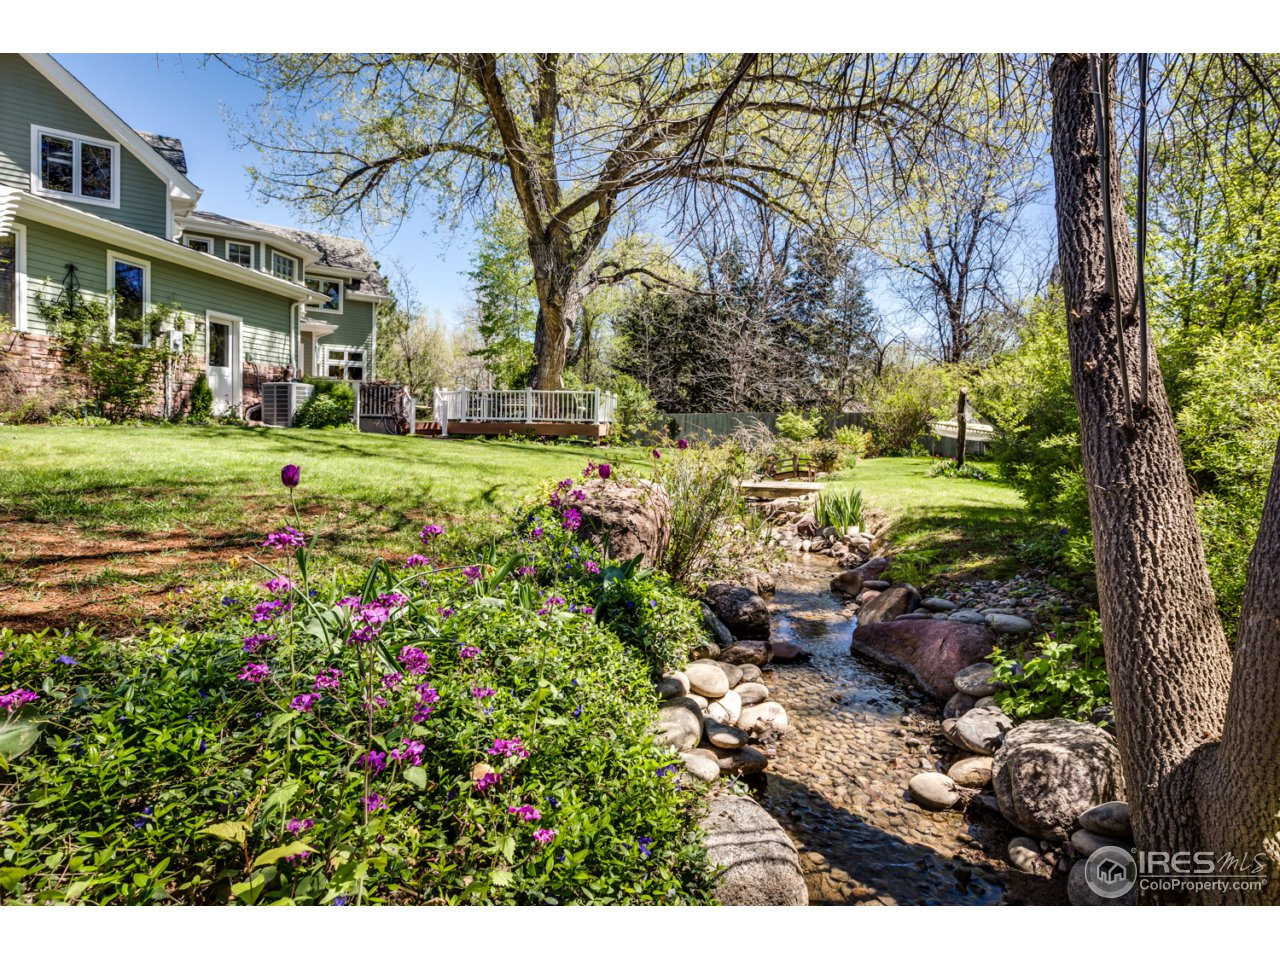 2176 Riverside Ln, Boulder CO 80304